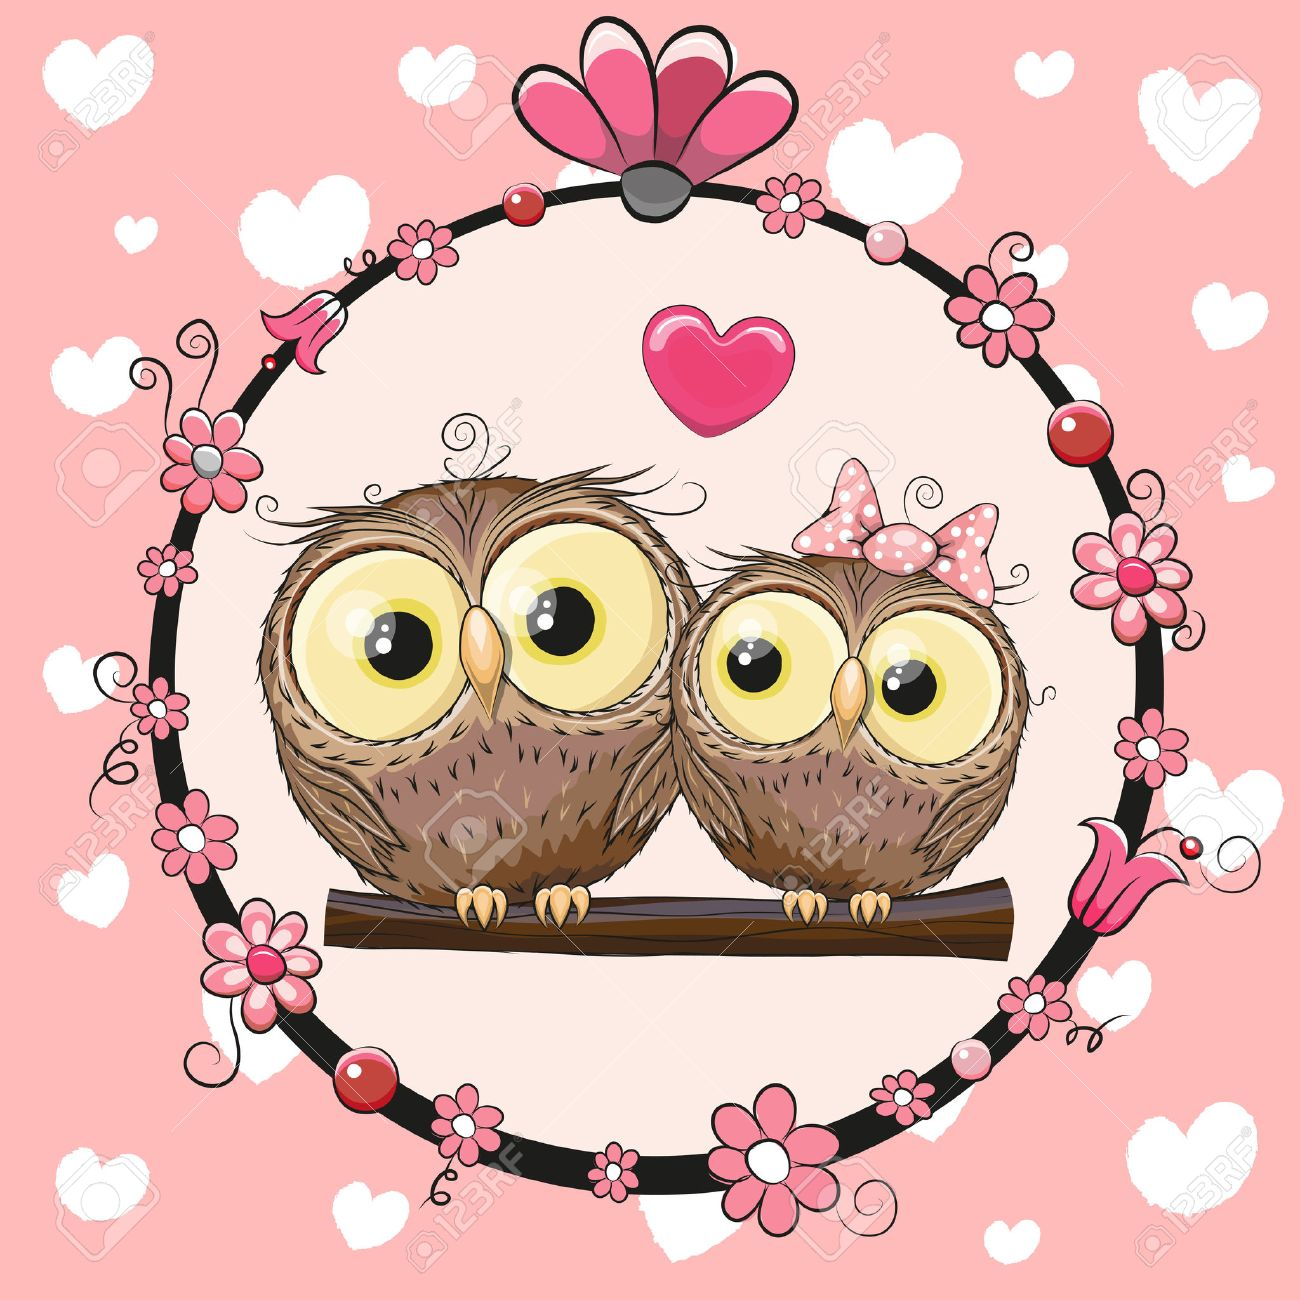 Greeting card with two cute cartoon owls royalty free cliparts greeting card with two cute cartoon owls stock vector 48177971 voltagebd Images